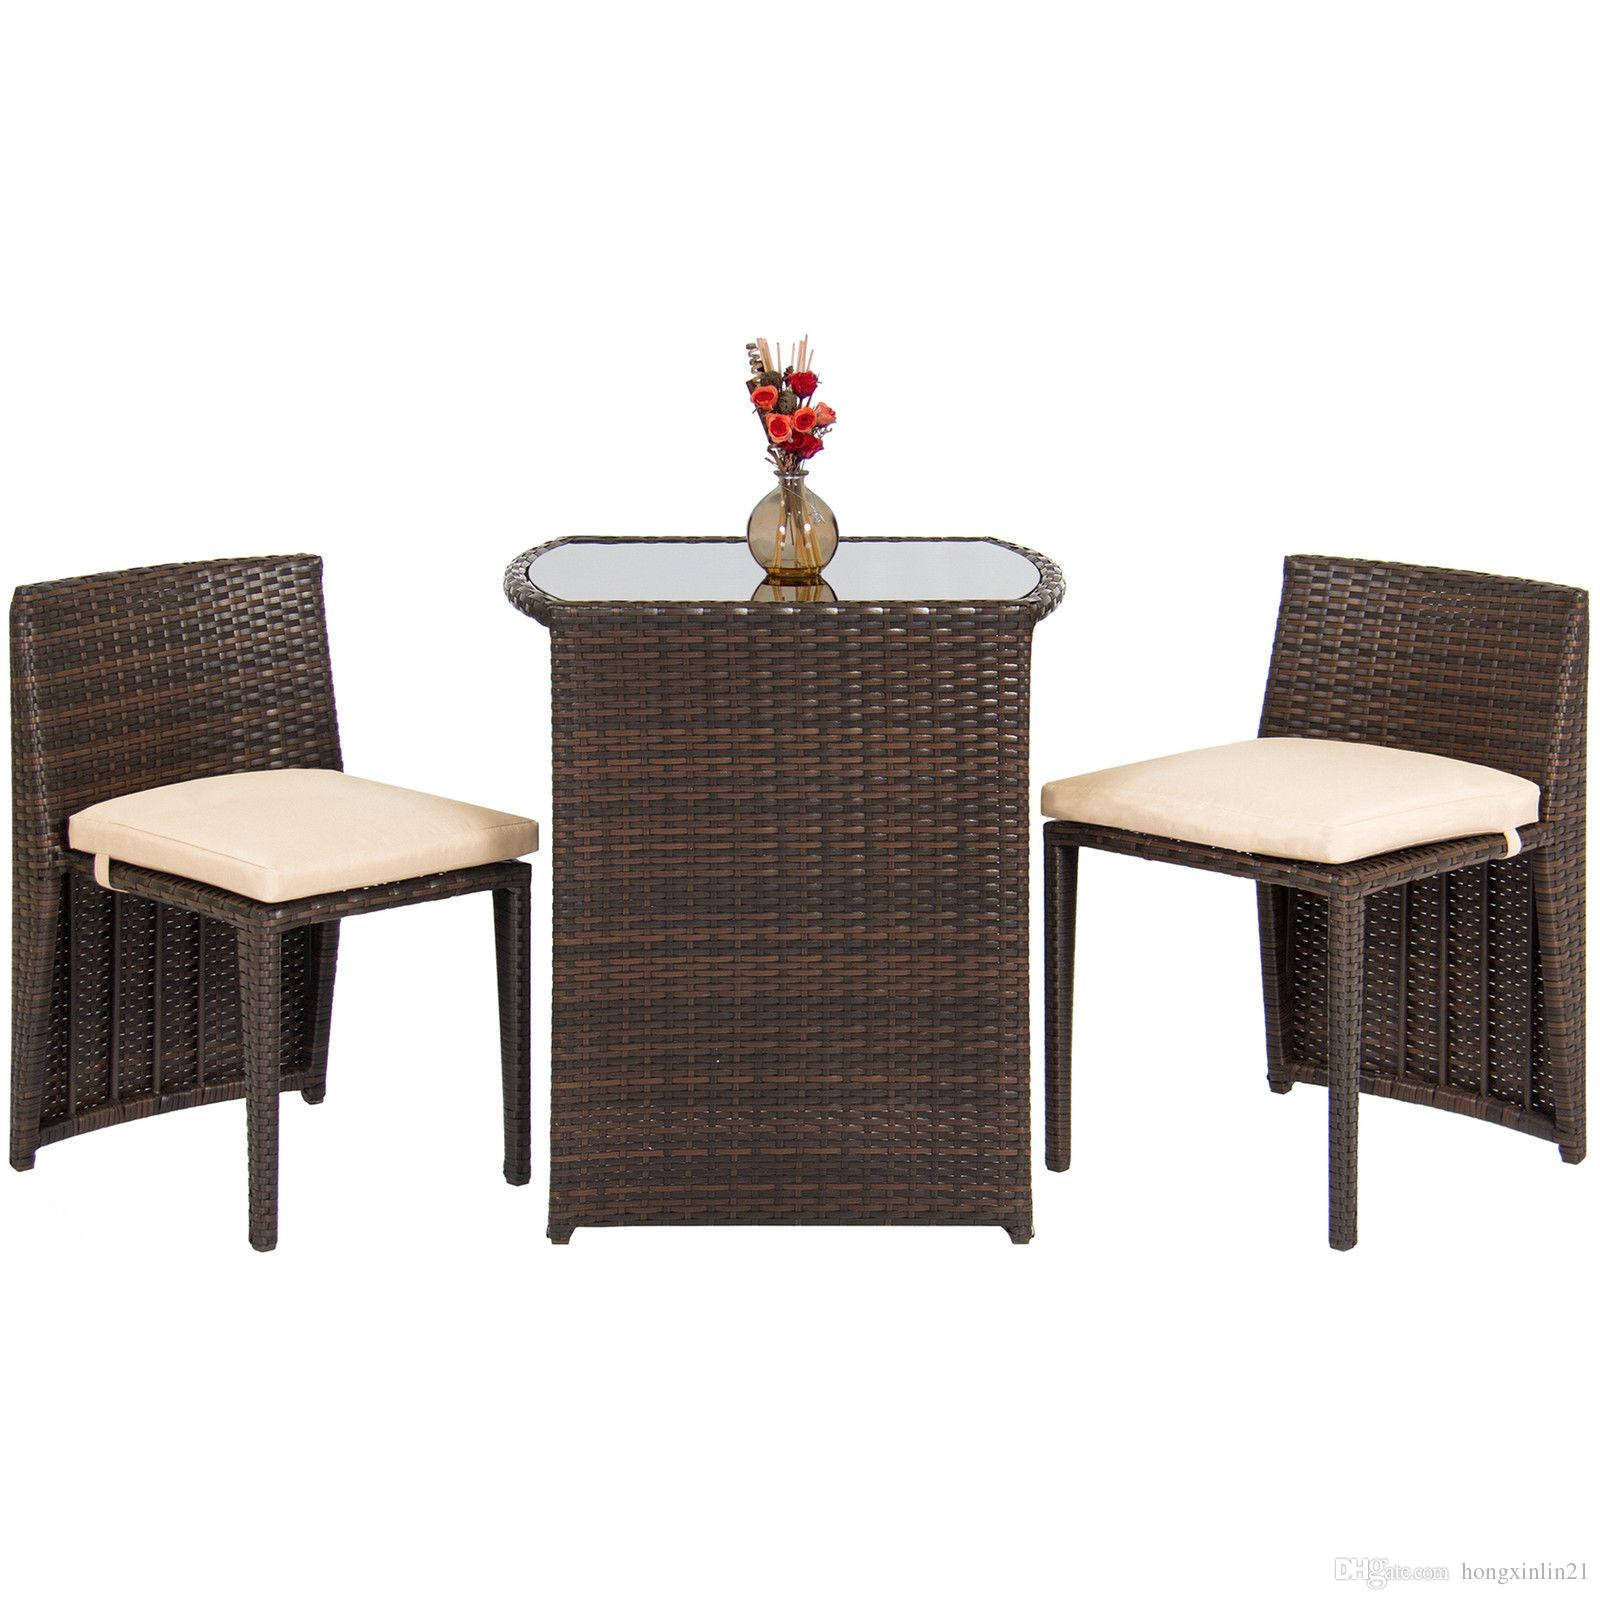 2018 outdoor patio furniture wicker bistro set glass top table 2 rh dhgate com patio set 2 chairs and table outdoor patio table and 2 chairs